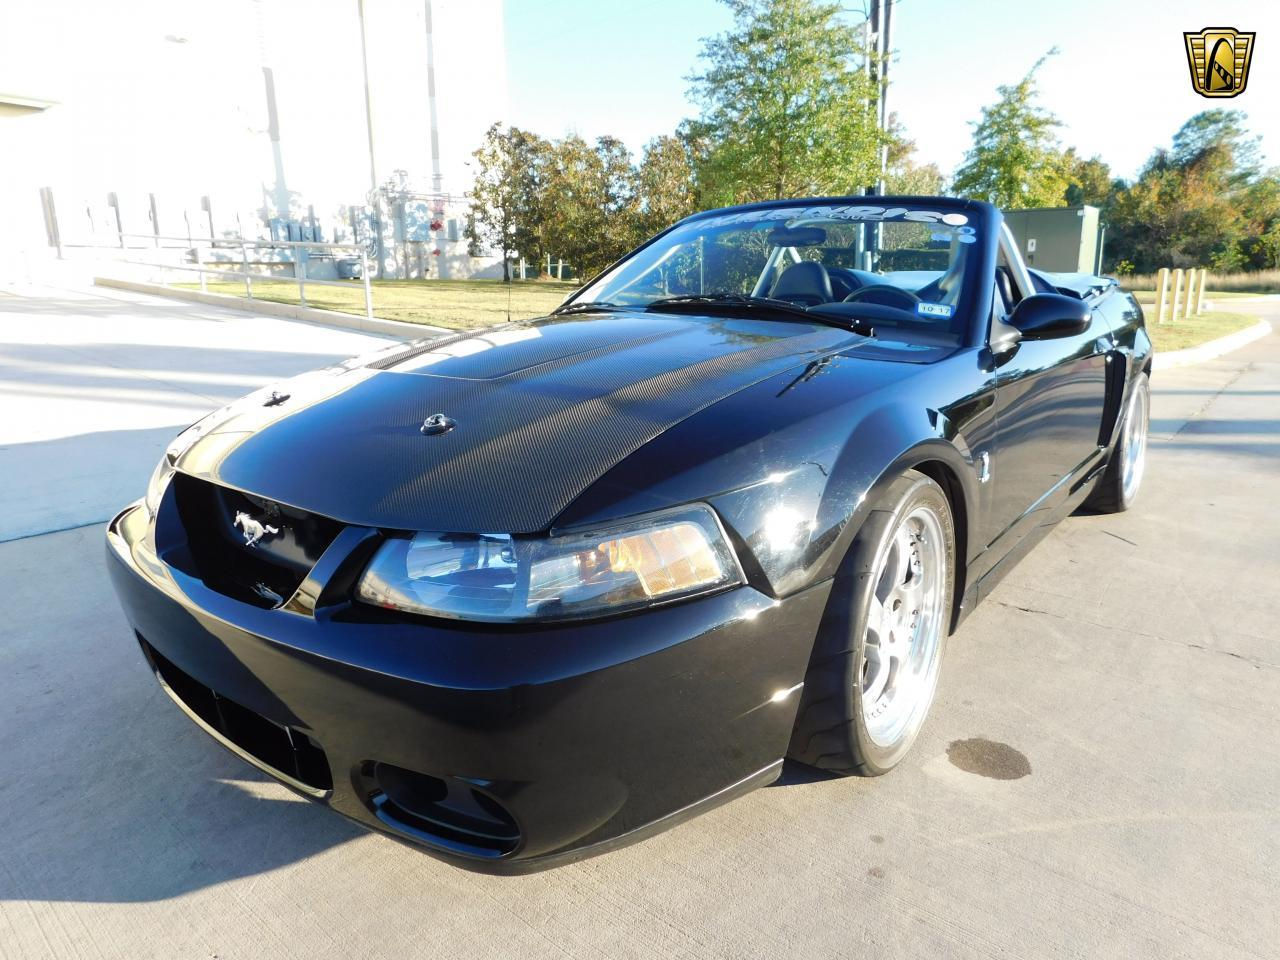 Large Picture of '03 Mustang located in Houston Texas - $37,595.00 Offered by Gateway Classic Cars - Houston - KEQH